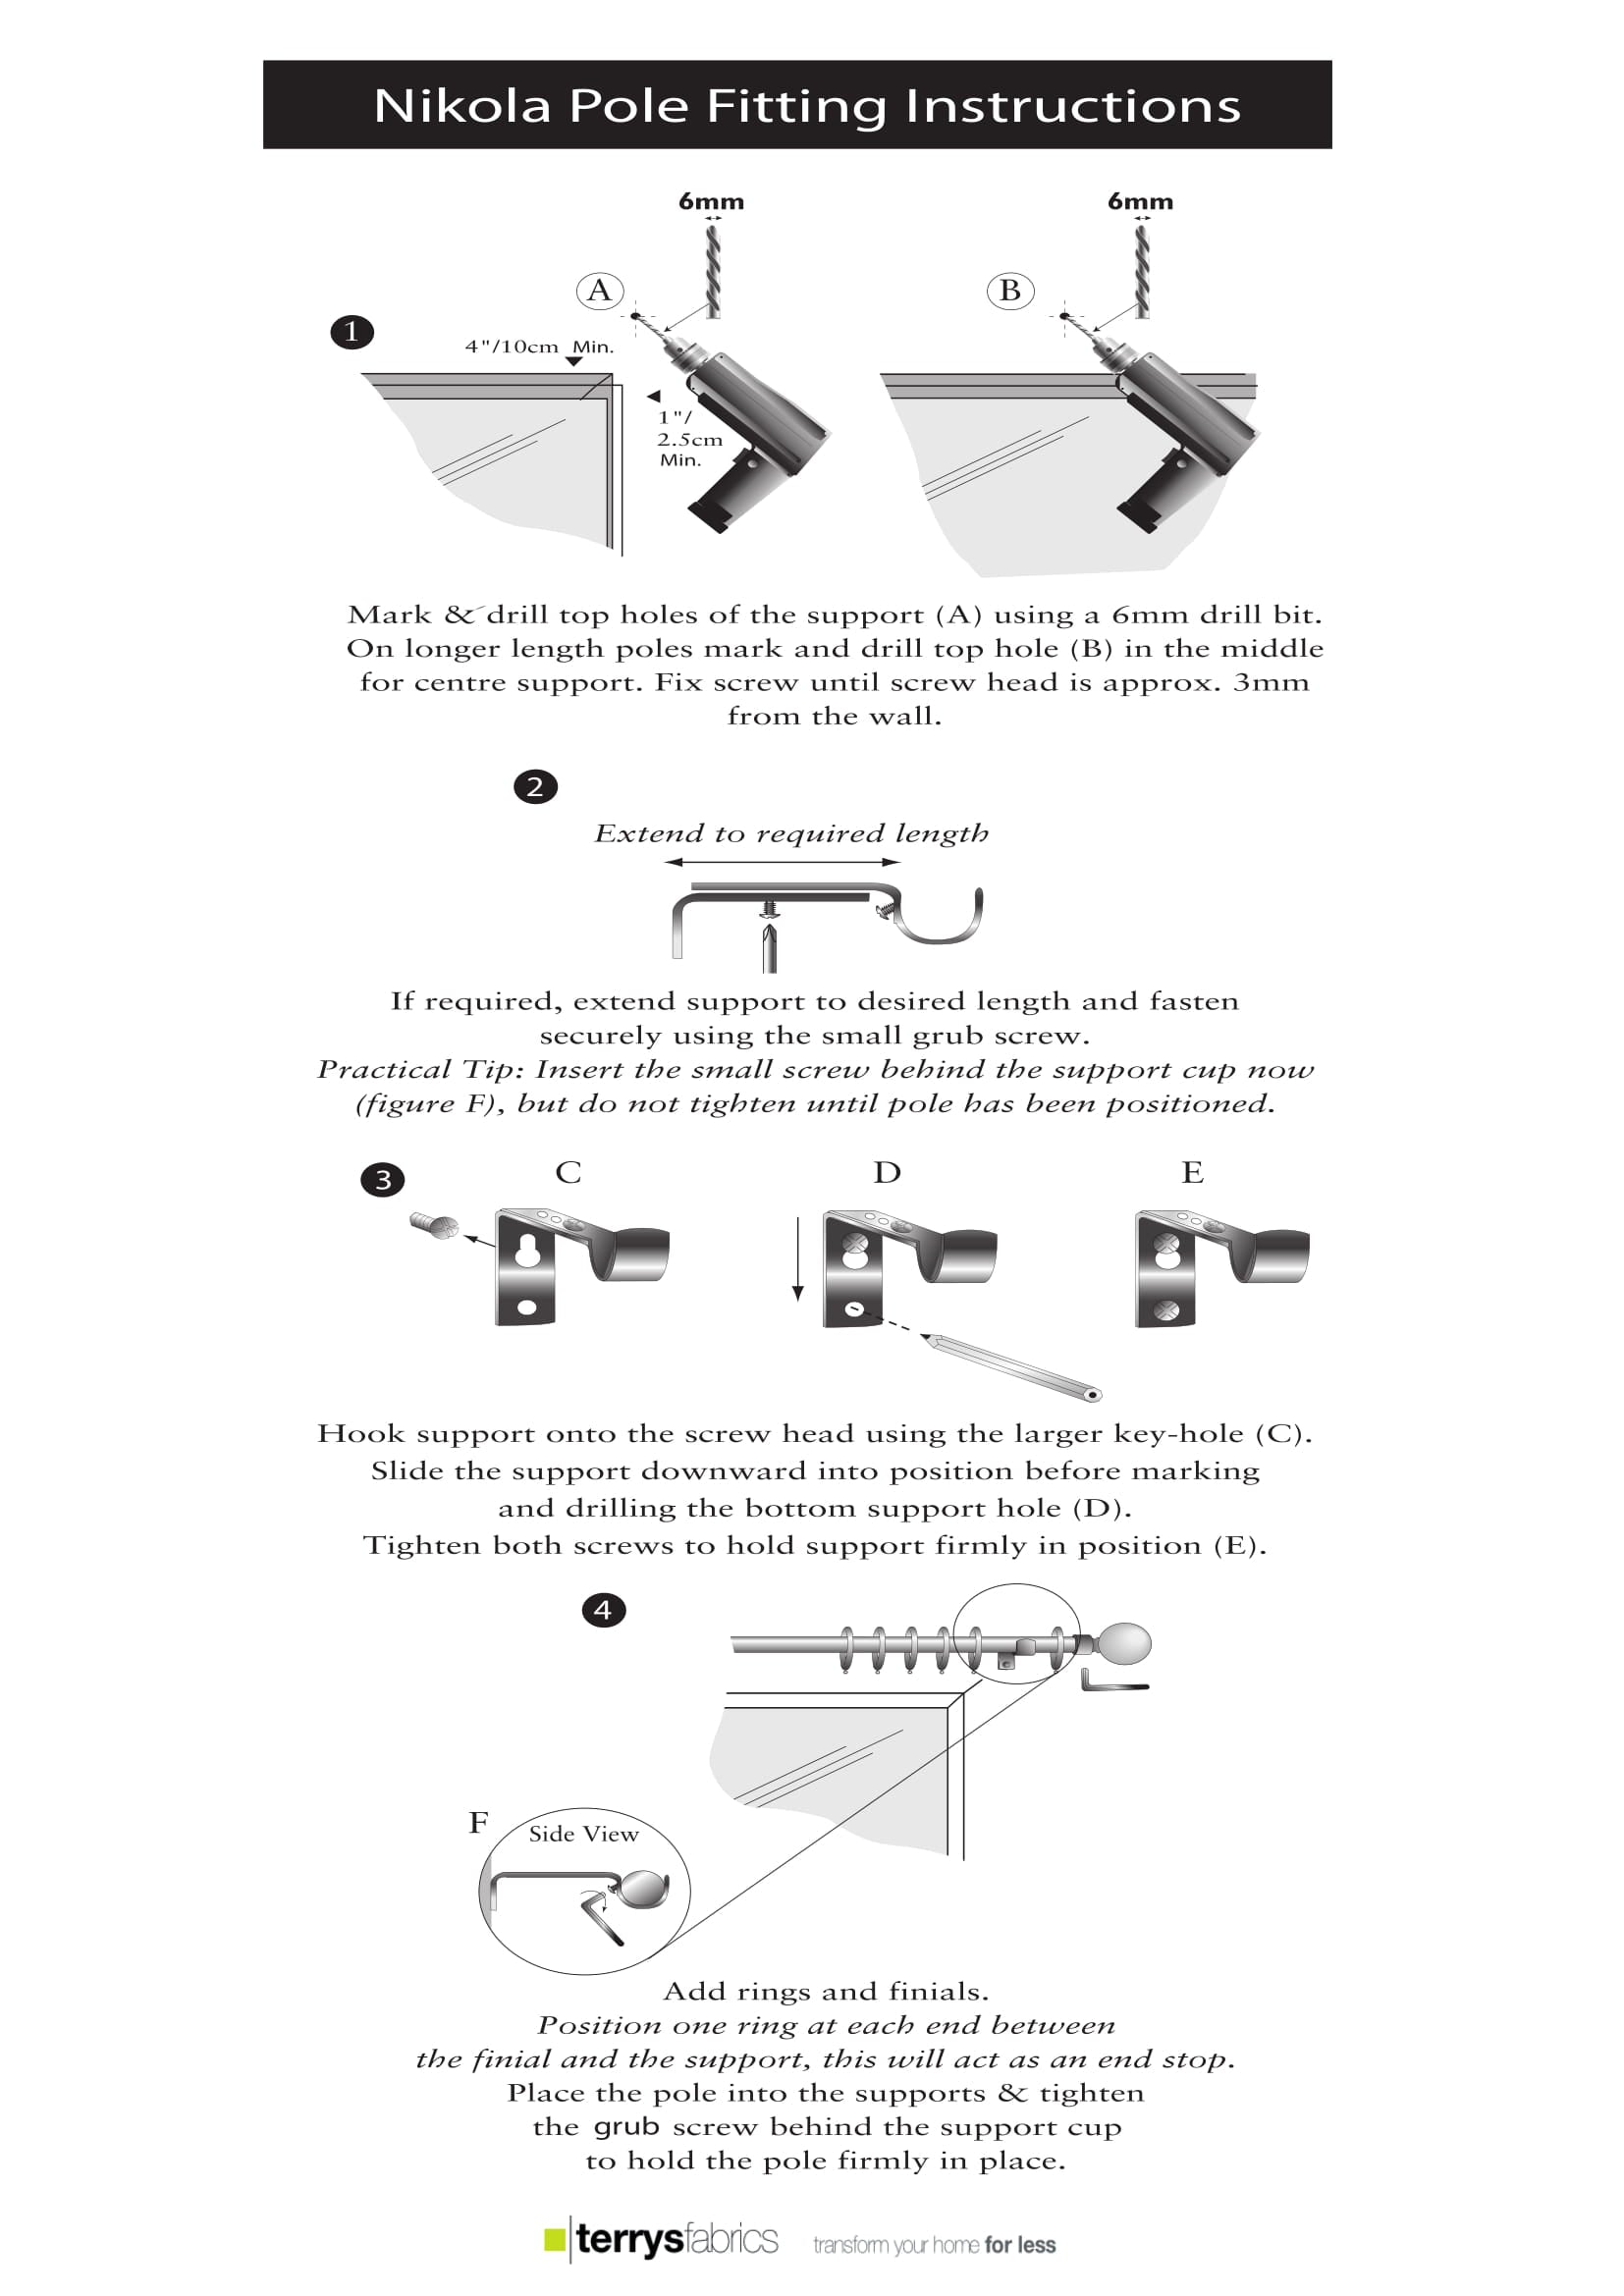 Nikola 28mm Curtain Pole Product Details And Nikola Fitting Instructions Three